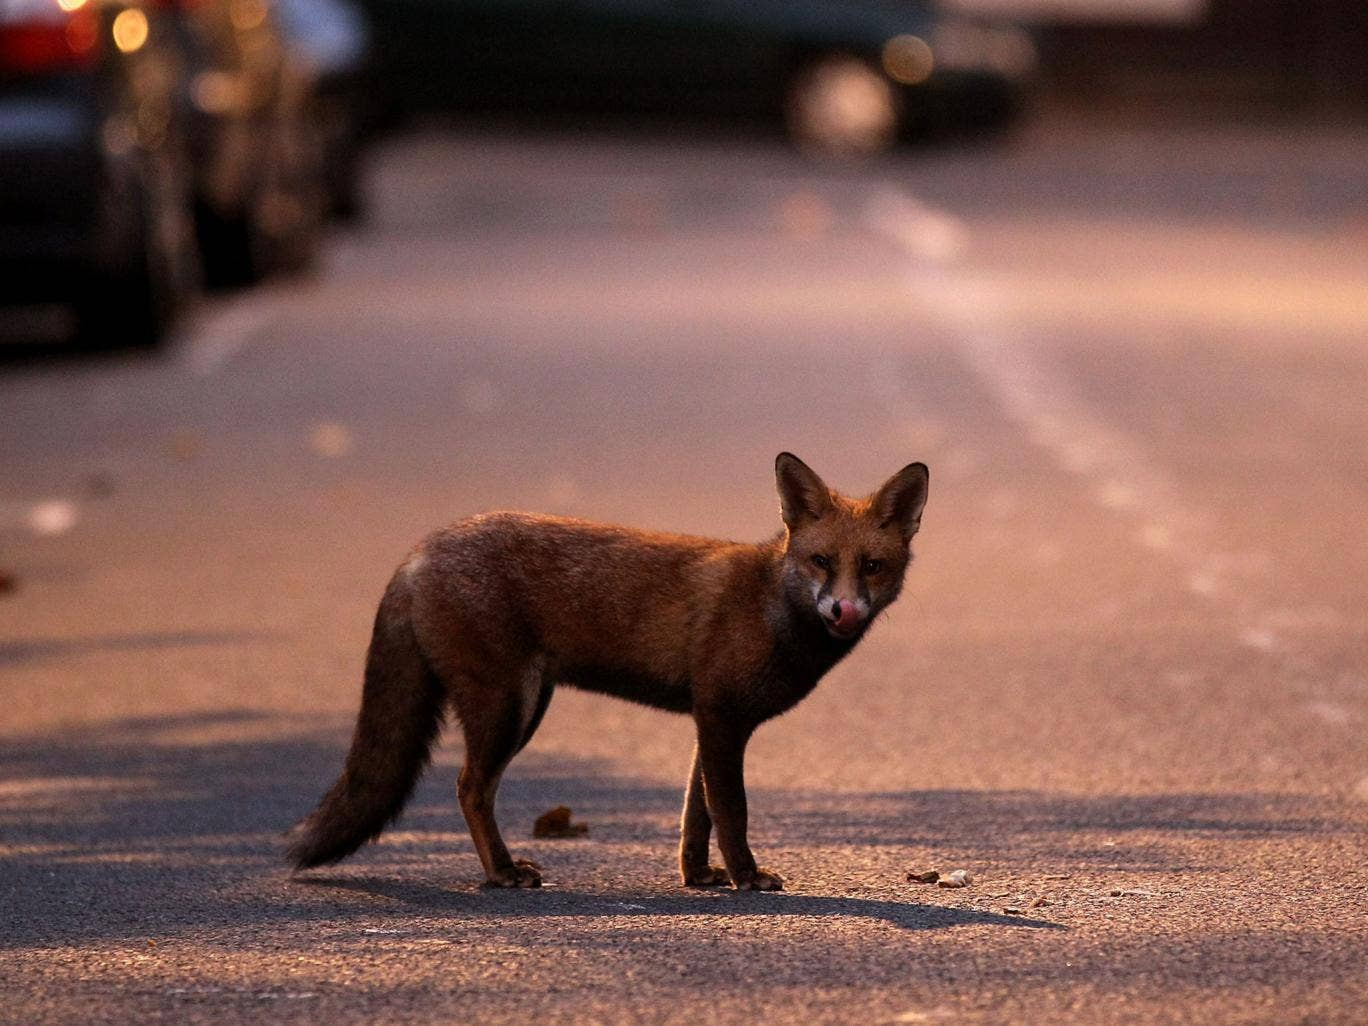 An estimated 10,000 foxes are thought to roam London